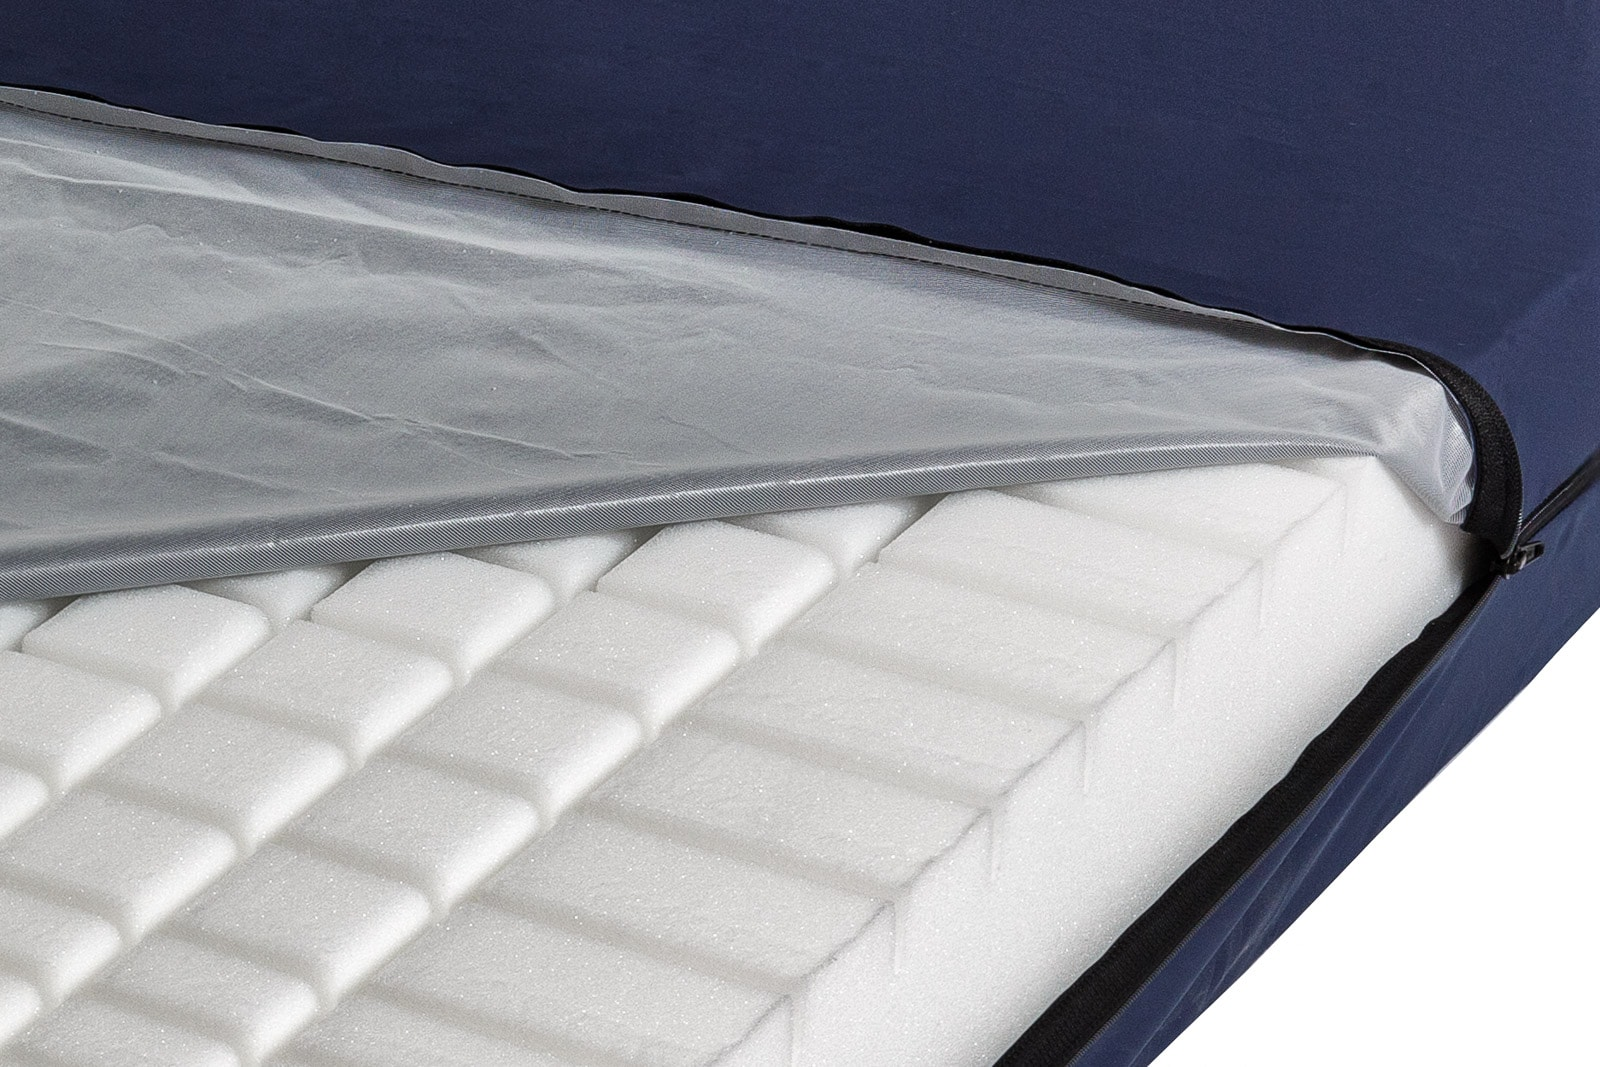 oska mattress features revealed product close-up